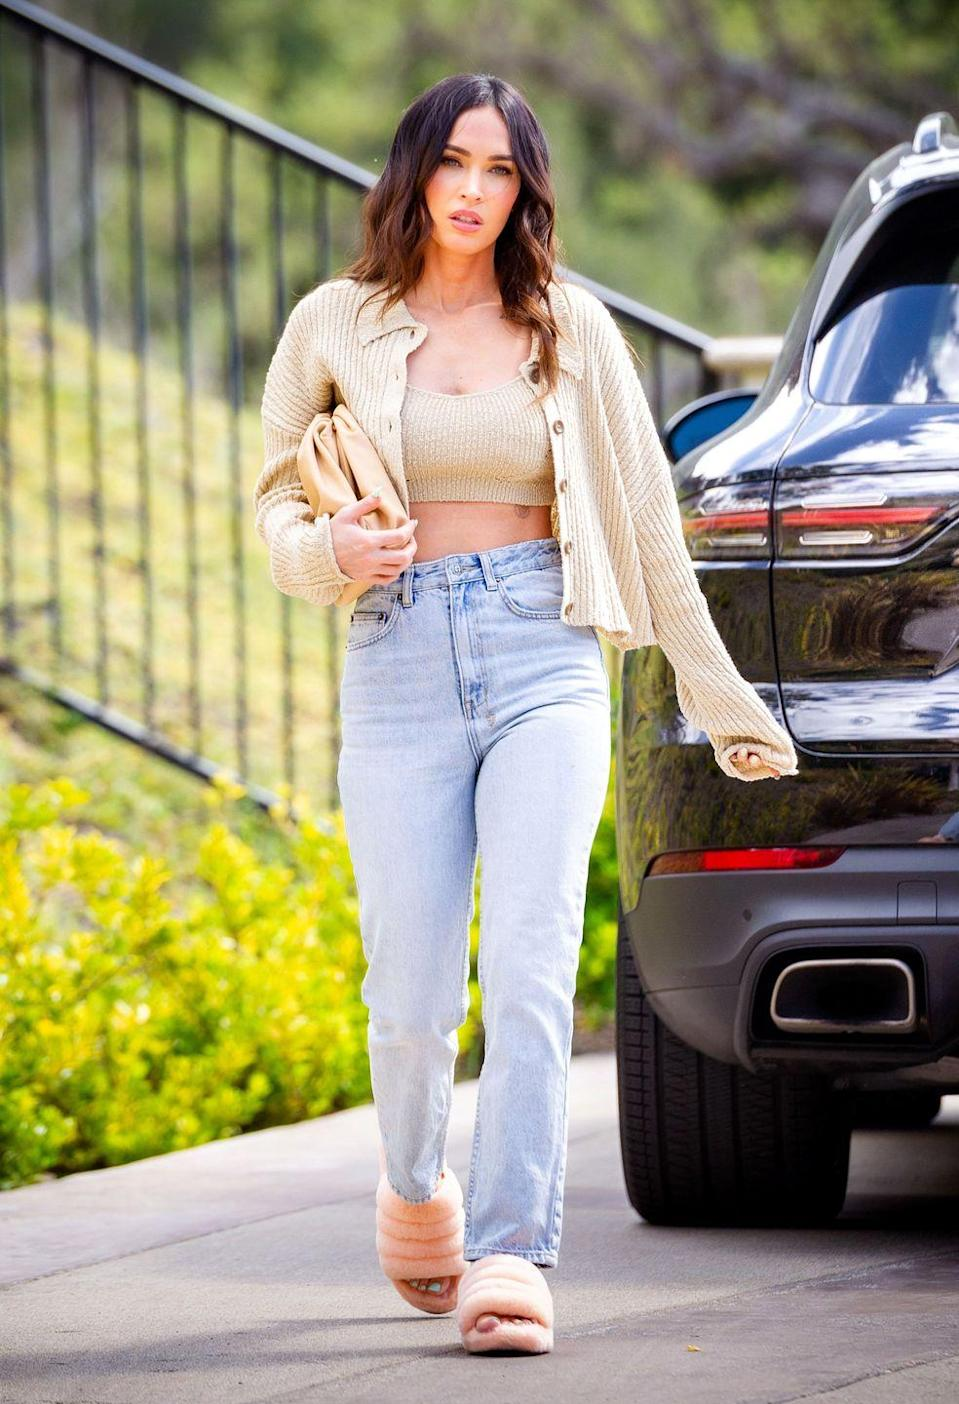 <p>The star wore a pair of peach-coloured UGG sliders, jeans, a beige-hued crop top and knitted cardigan from Urban Outfitters while out in Los Angeles. </p>